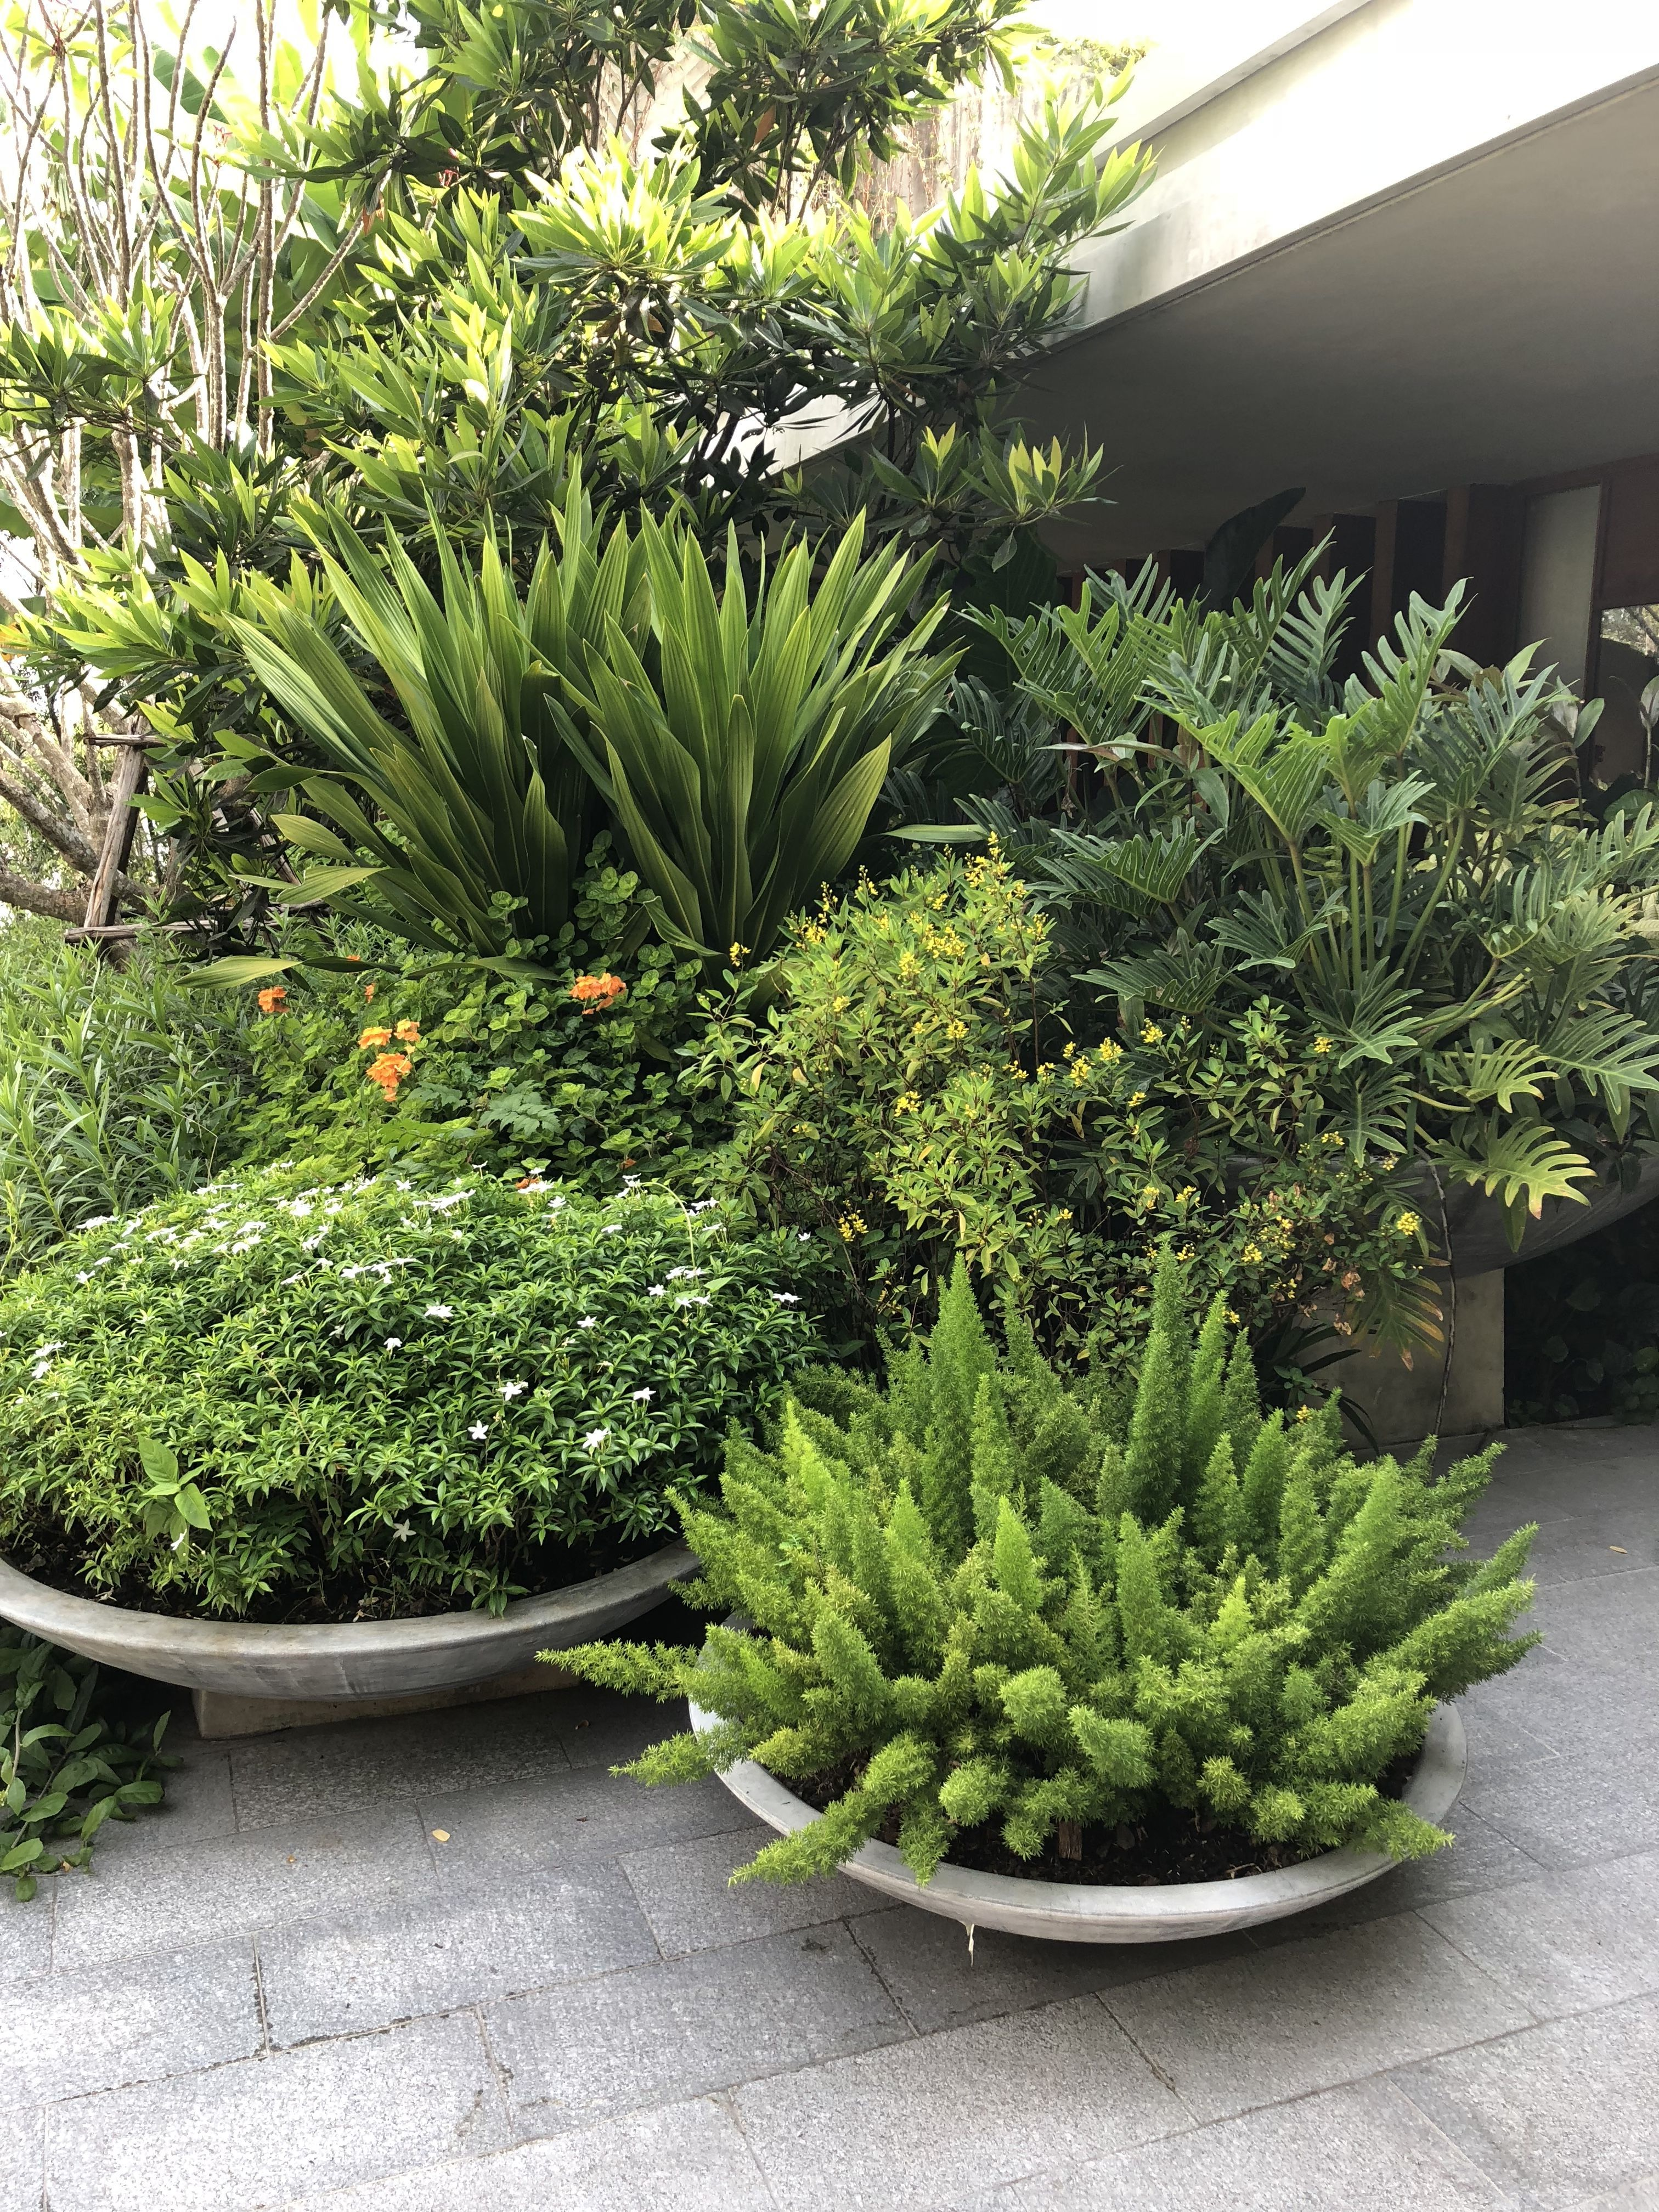 GARDEN (patio top step planters) I want to give a semi tropical / modern look to these , although I can't go to tropical plants (UK climate ) a semi tropical look can be achieved with a mix of bold hardy architectural plants and succulents ...this will tie in with left side border and look stunning !REAR GARDEN (patio top step planters) I want to...